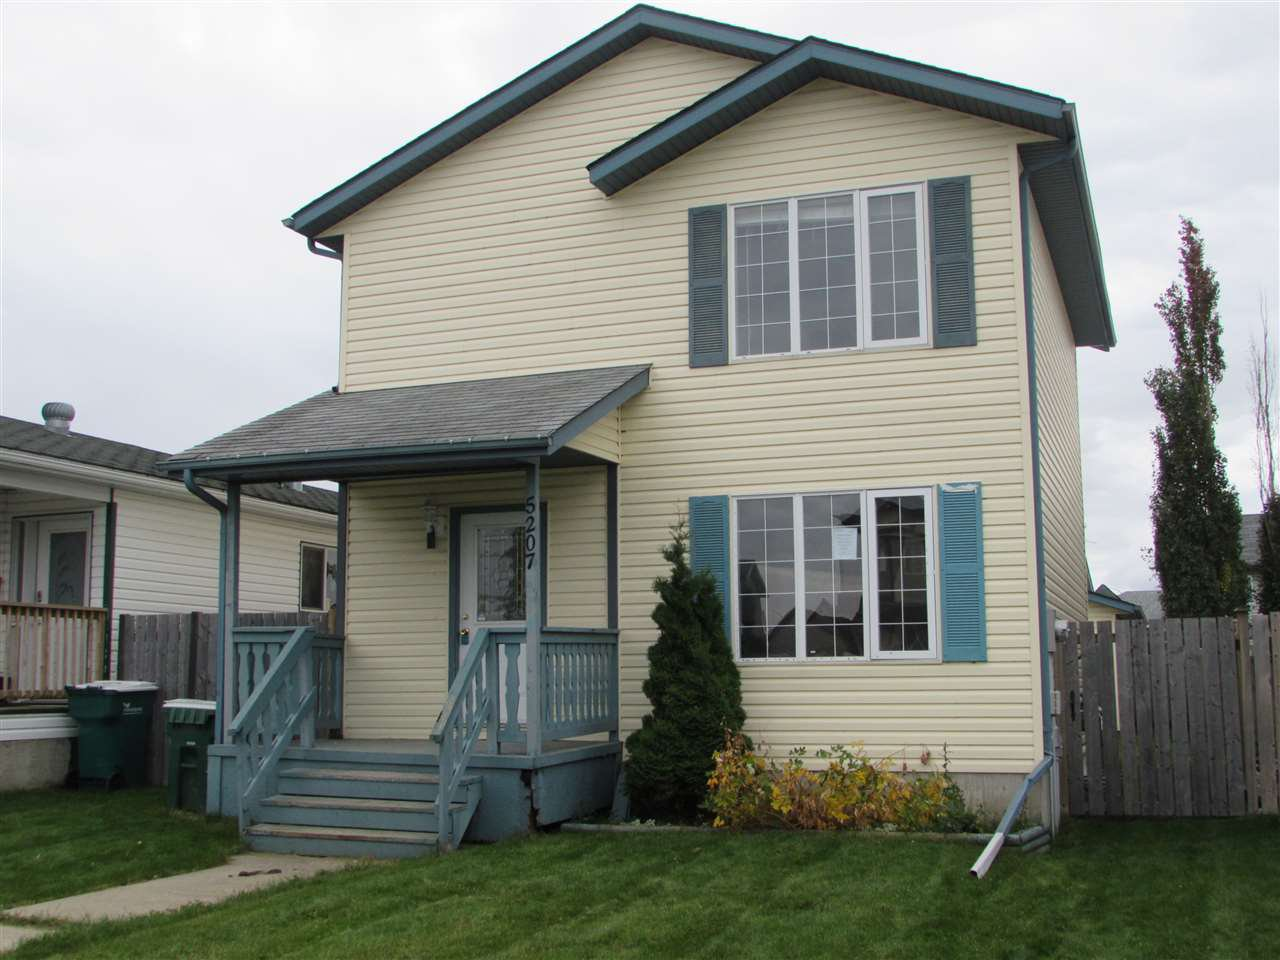 Main Photo: 5207 49 Avenue: Gibbons House for sale : MLS®# E4175425